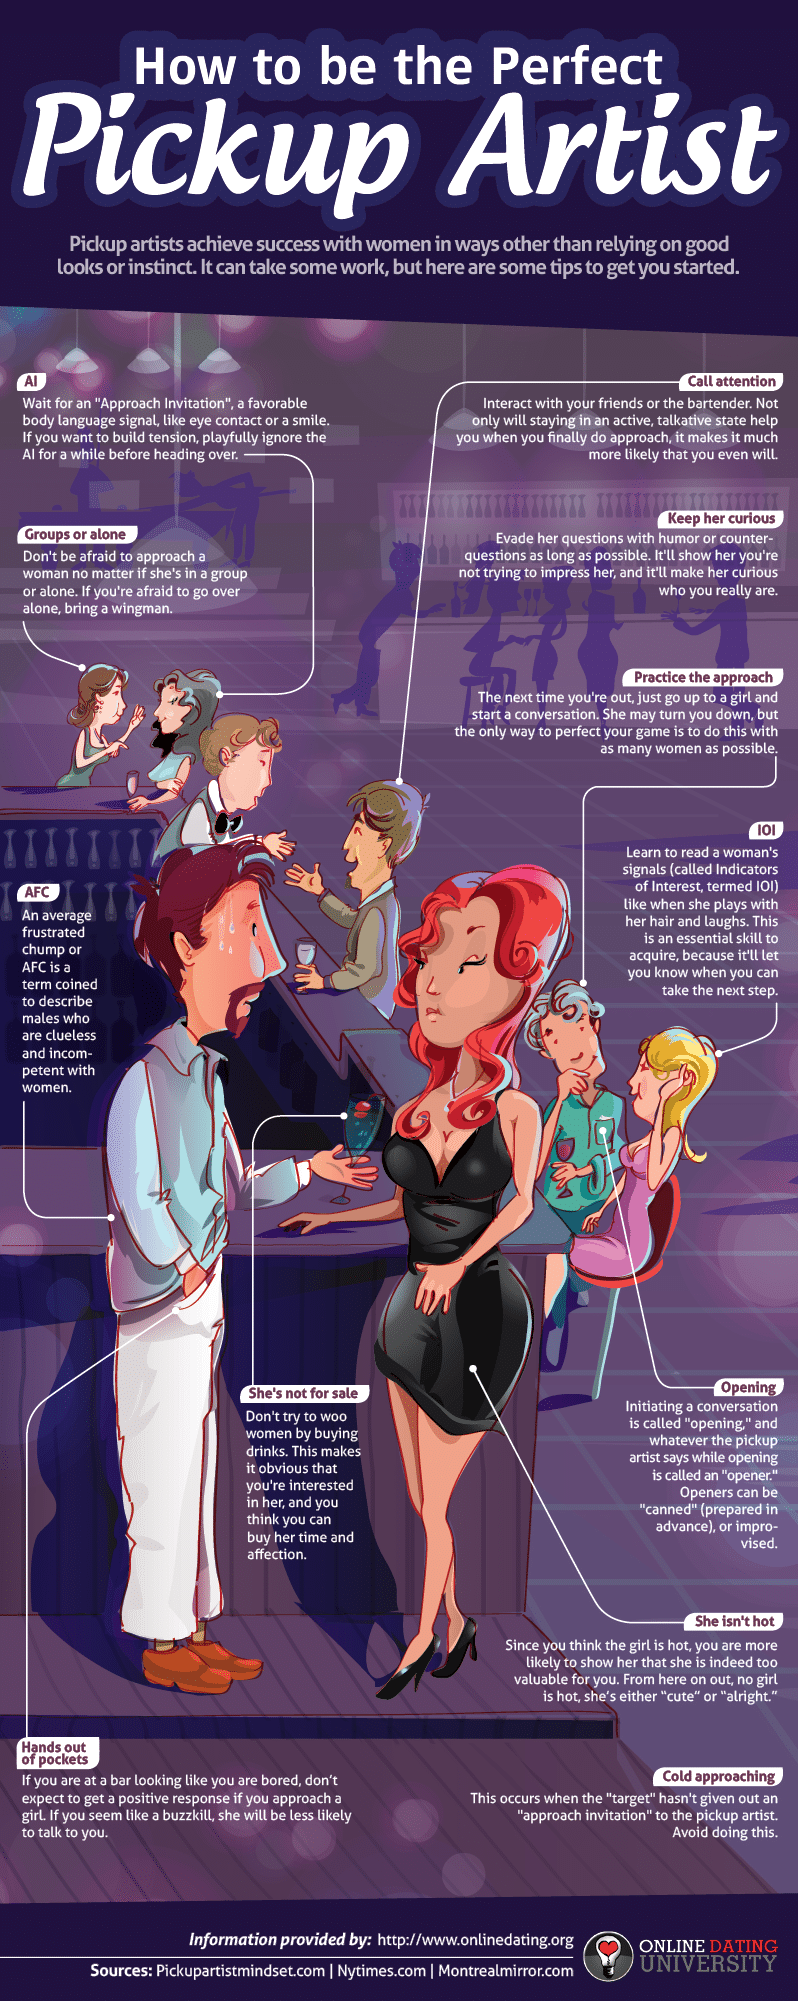 How To Be The Perfect Pickup Artist – The Tricks [Infographic]